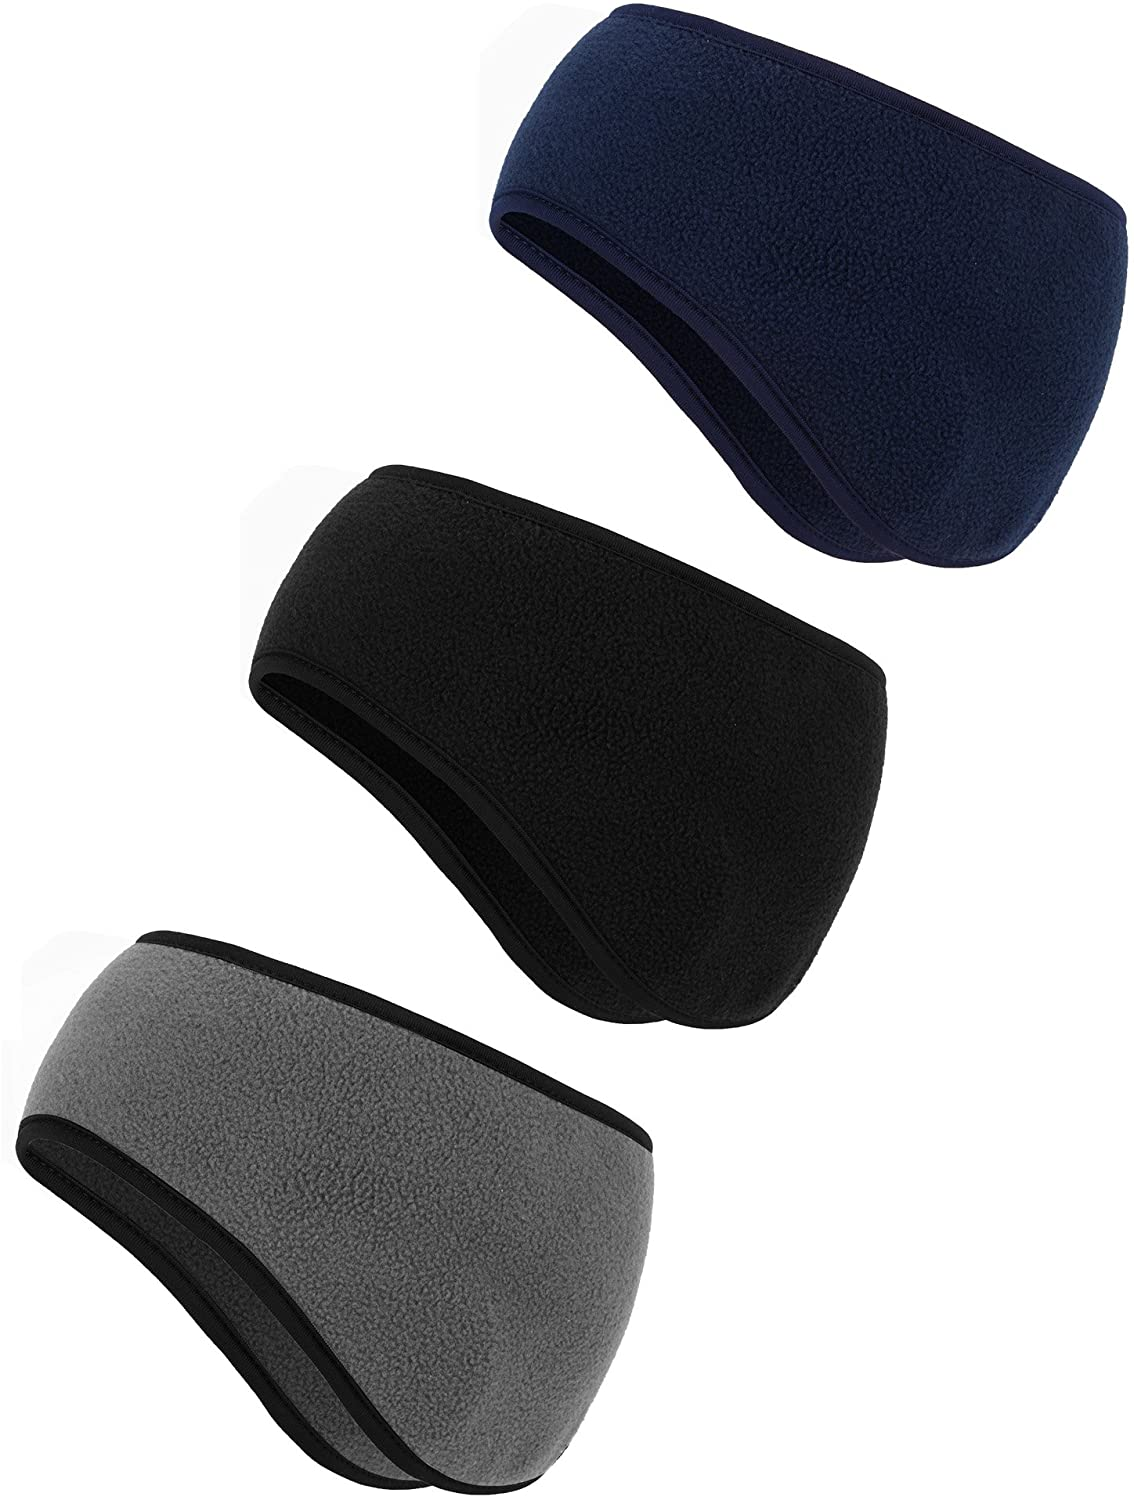 BBTO 3 Pieces Ear Warmer Headband Winter Headbands Fleece Headband for Women Men Color Set 5